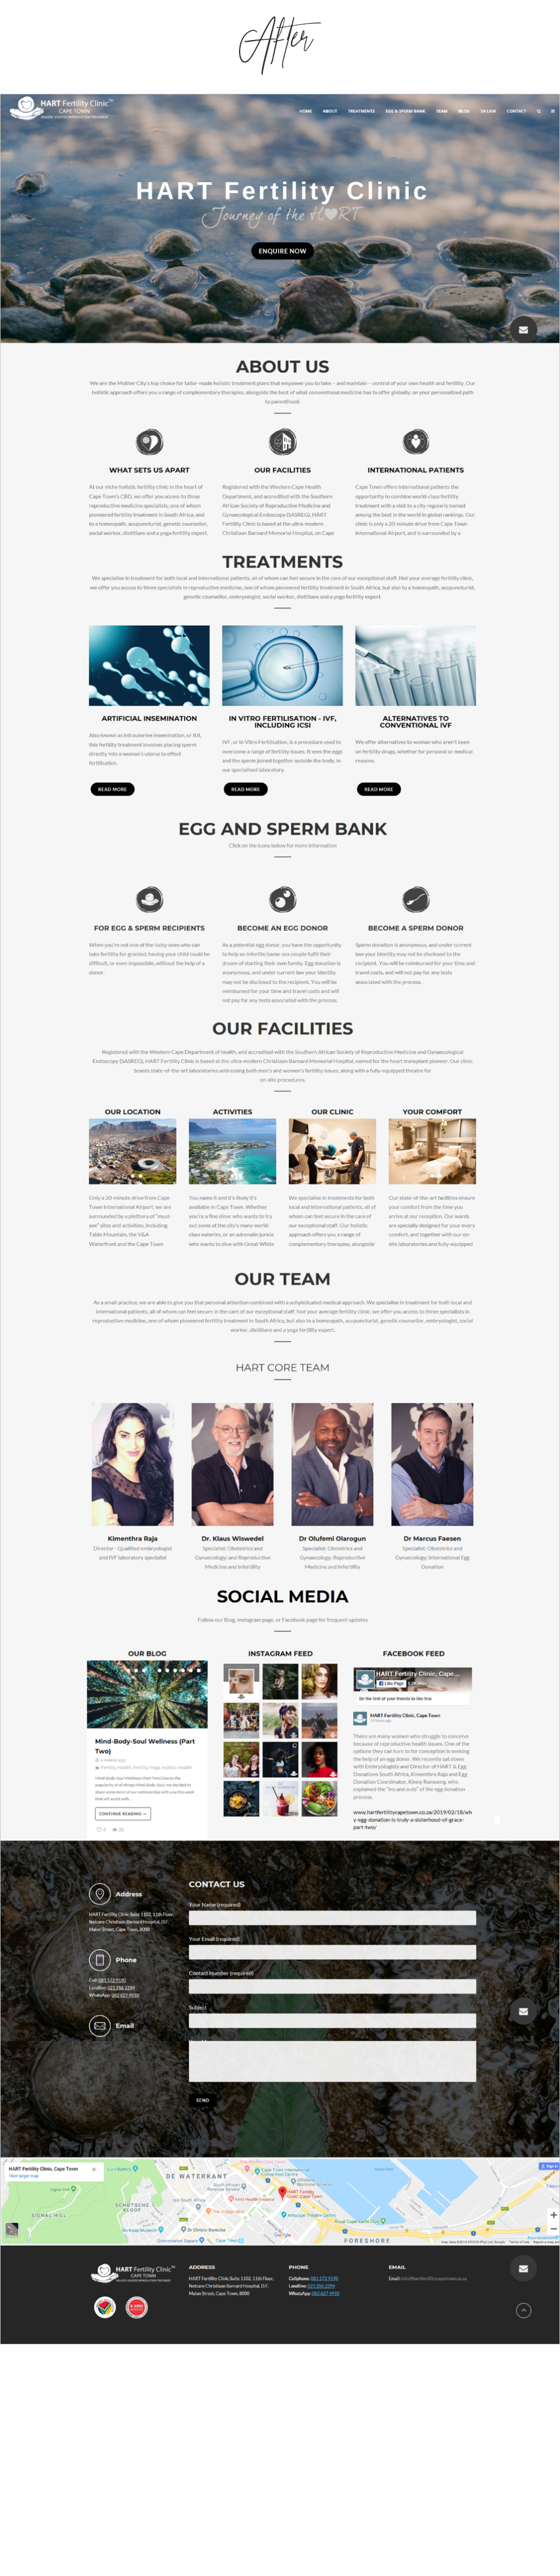 Before and After Website Redesigns - HART Fertility Cape Town